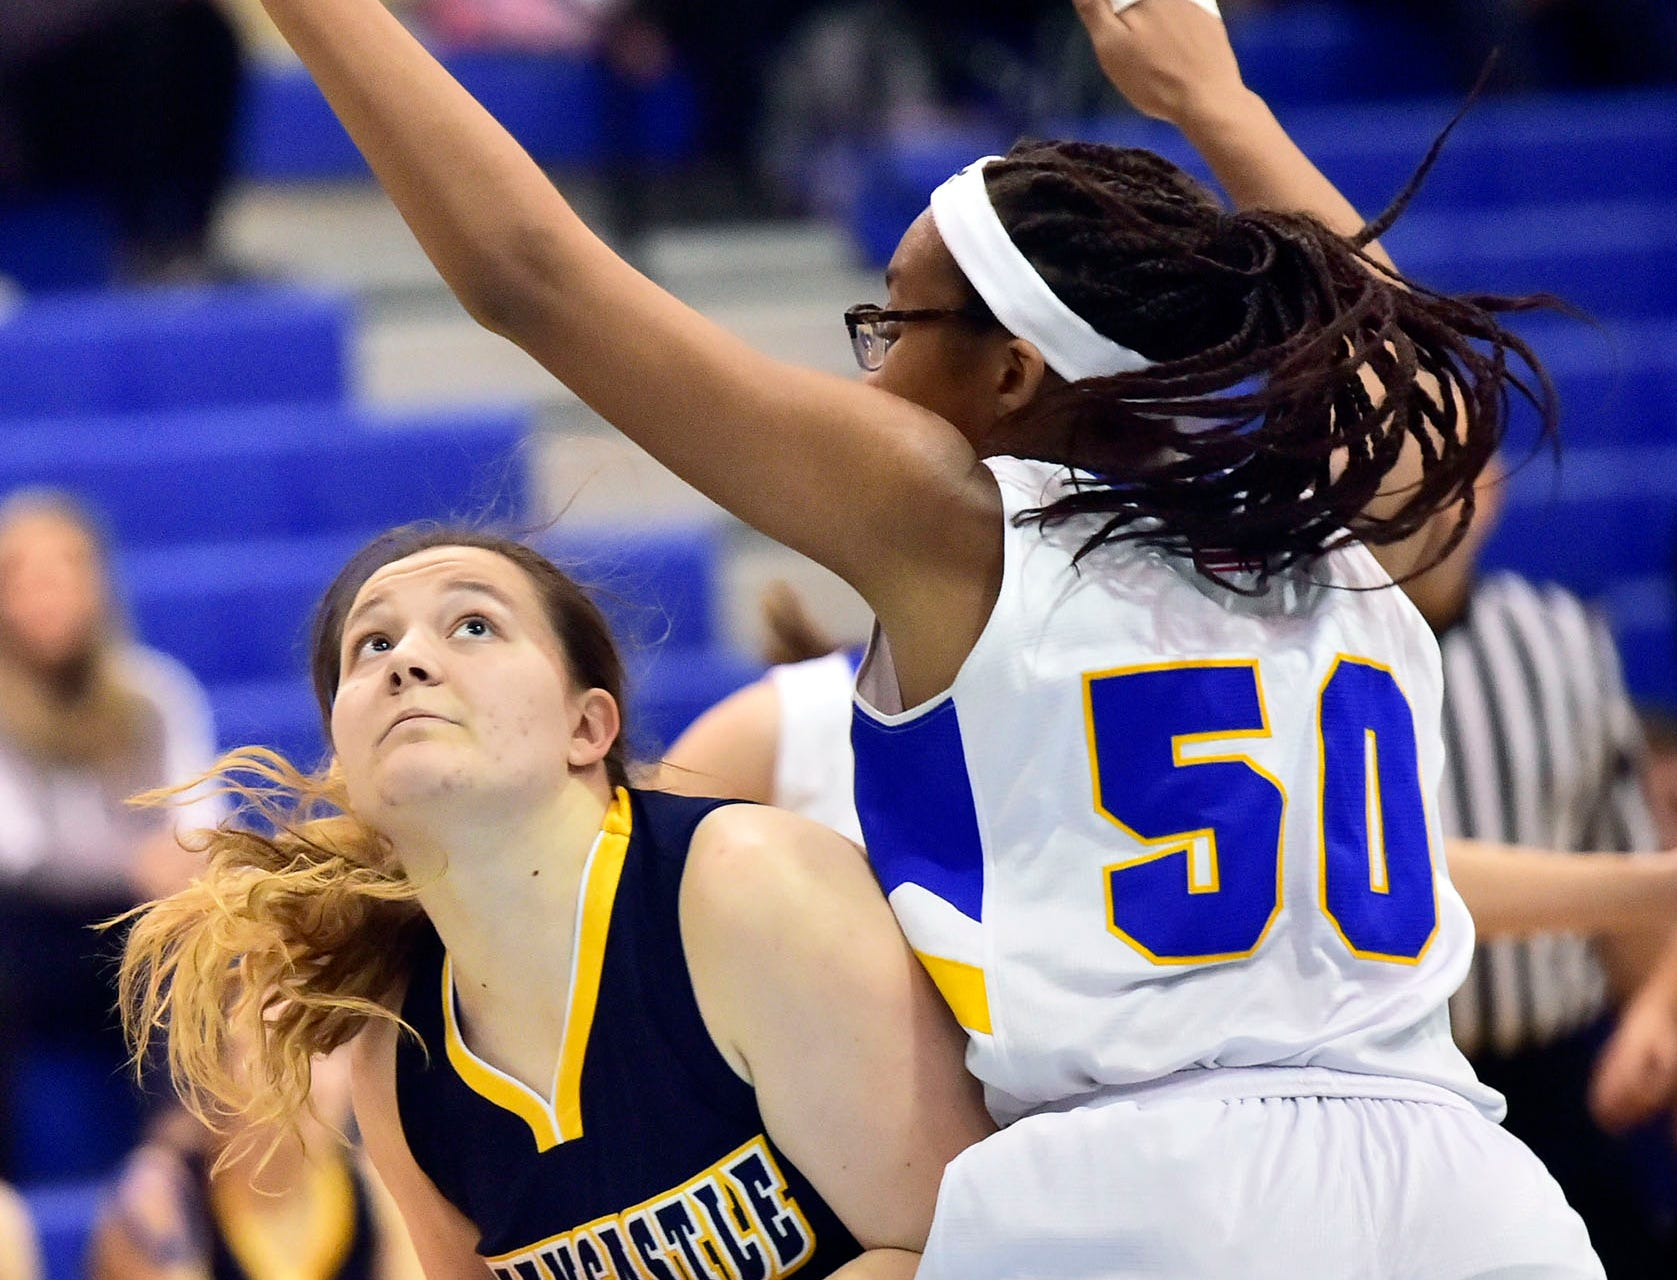 Greencastle's Madison Sweitzer (24) tries to shoot over Waynesboro's Sophia Johnsonj during the Franklin County Tip-Off Tournament, Friday, Dec. 7, 2018.